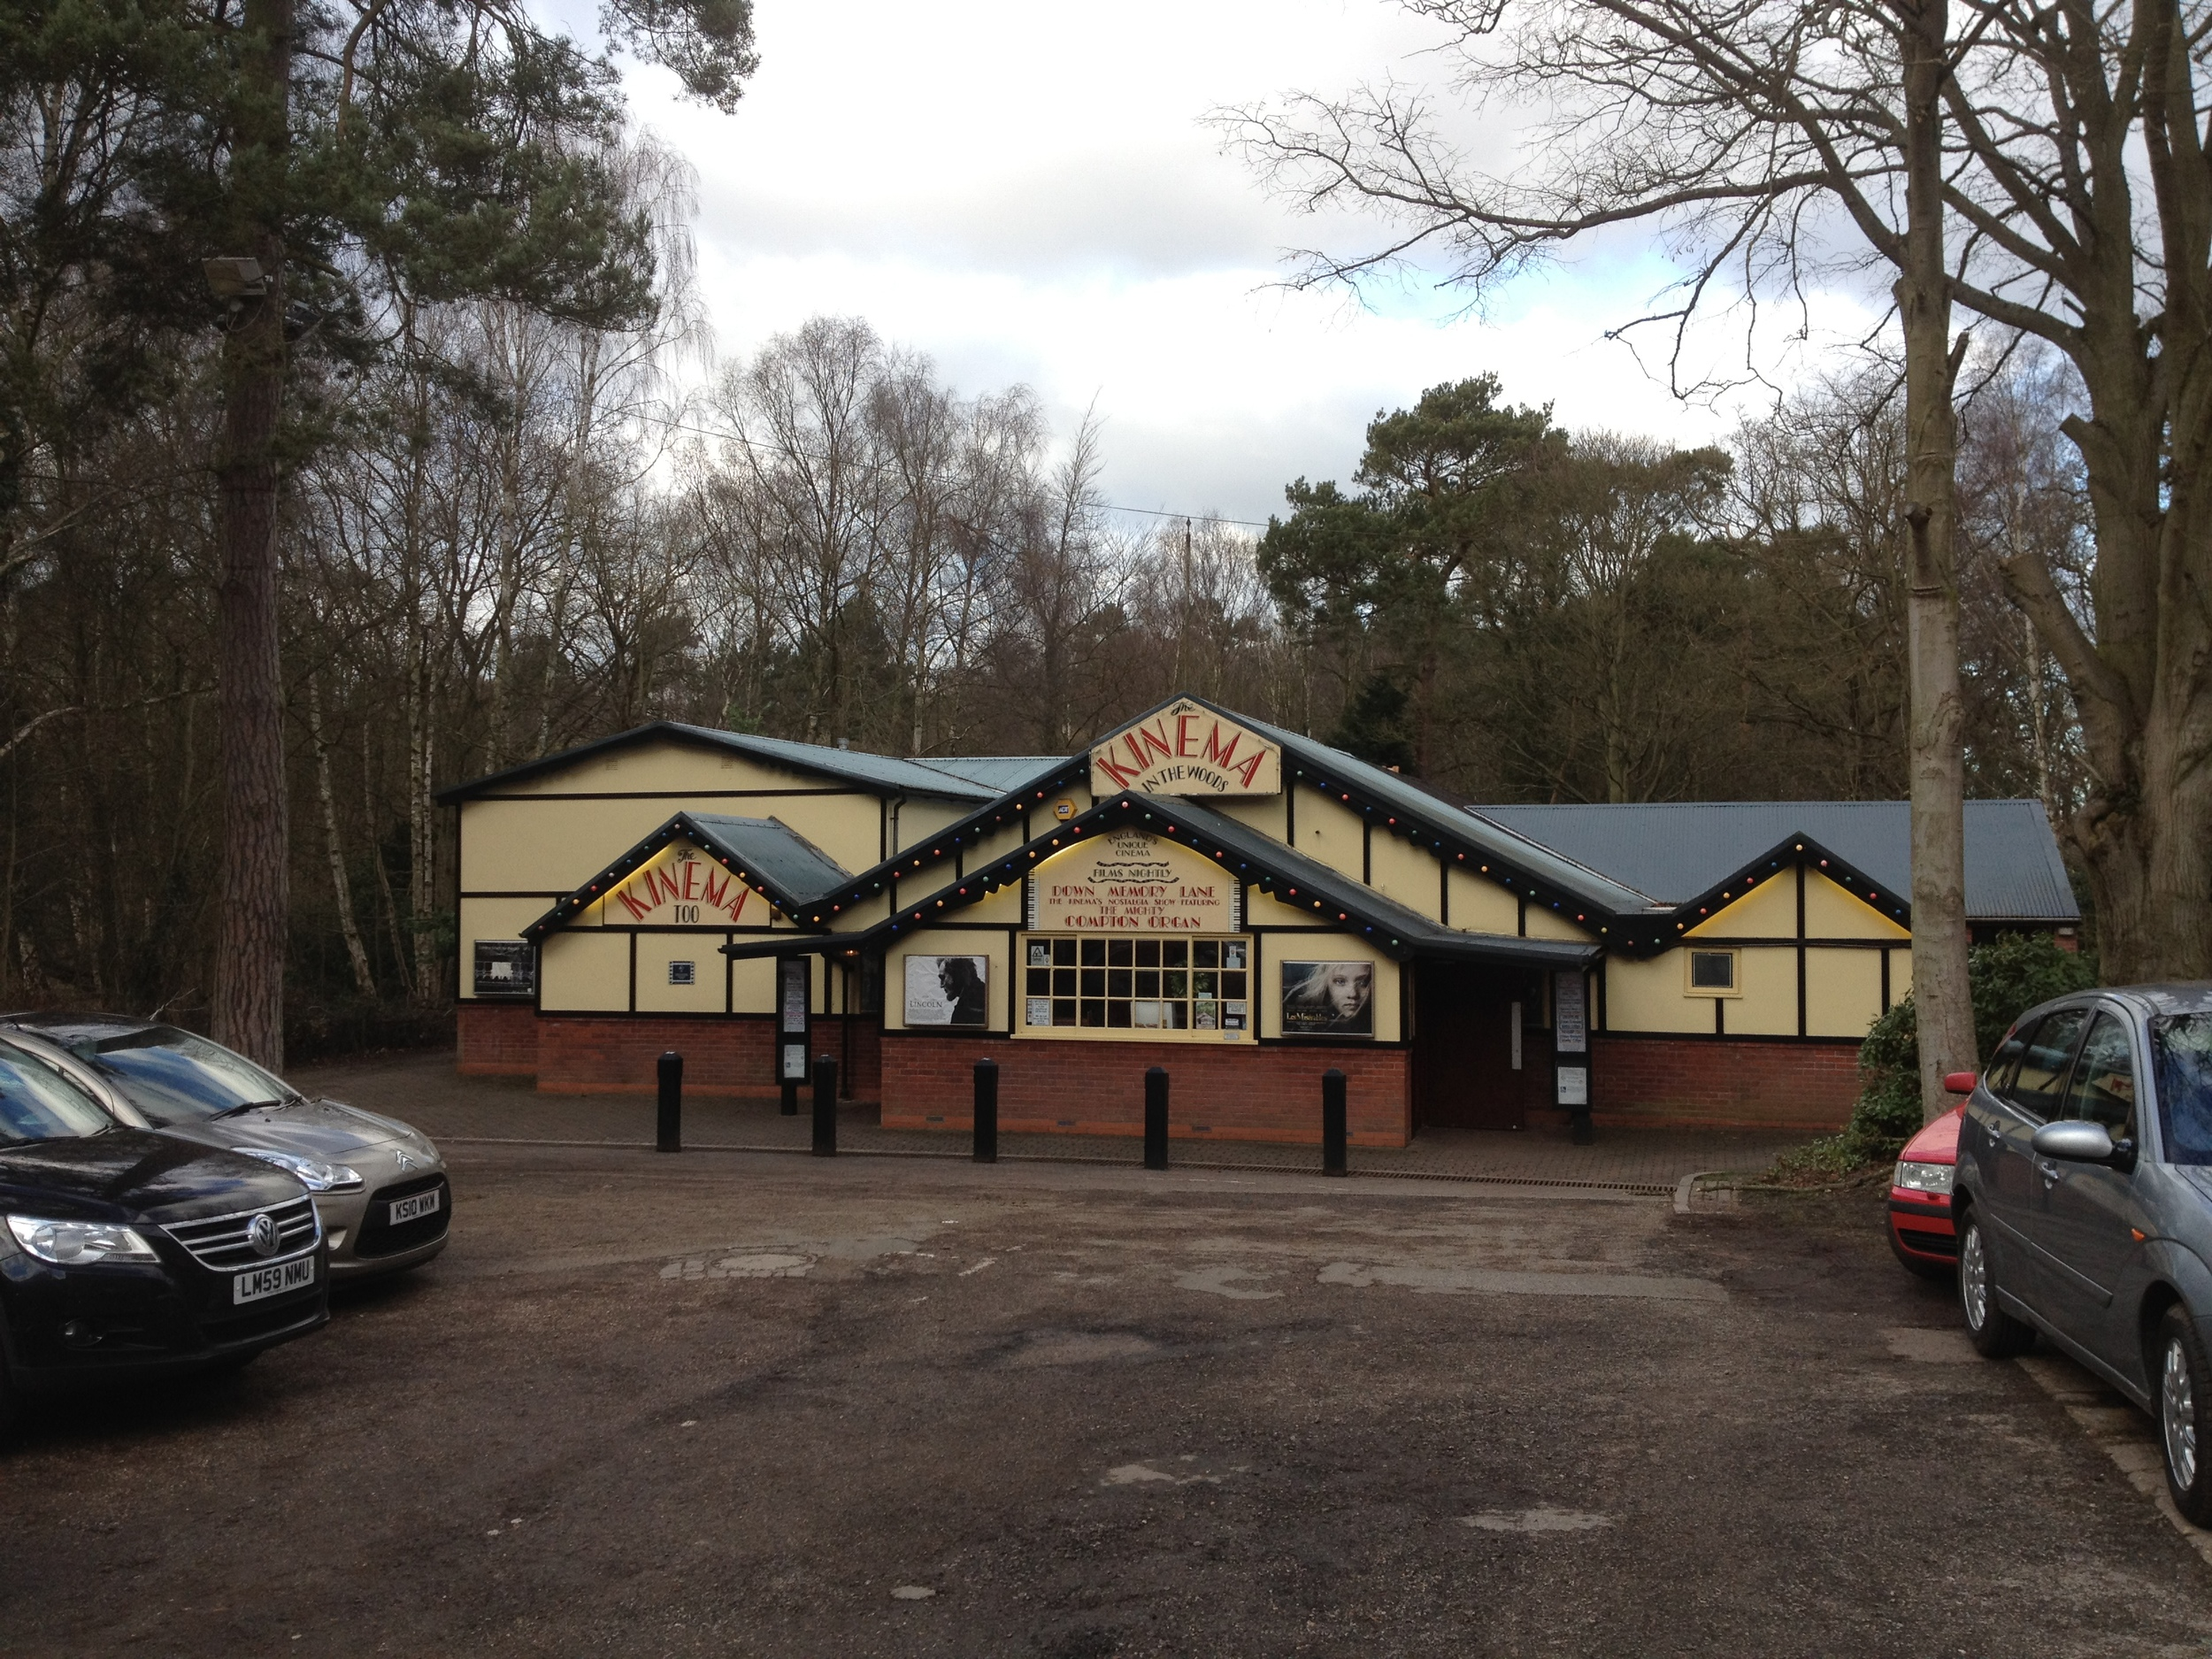 Kinema in the Woods - independent cinema in Woodhall Spa, Lincolnshire